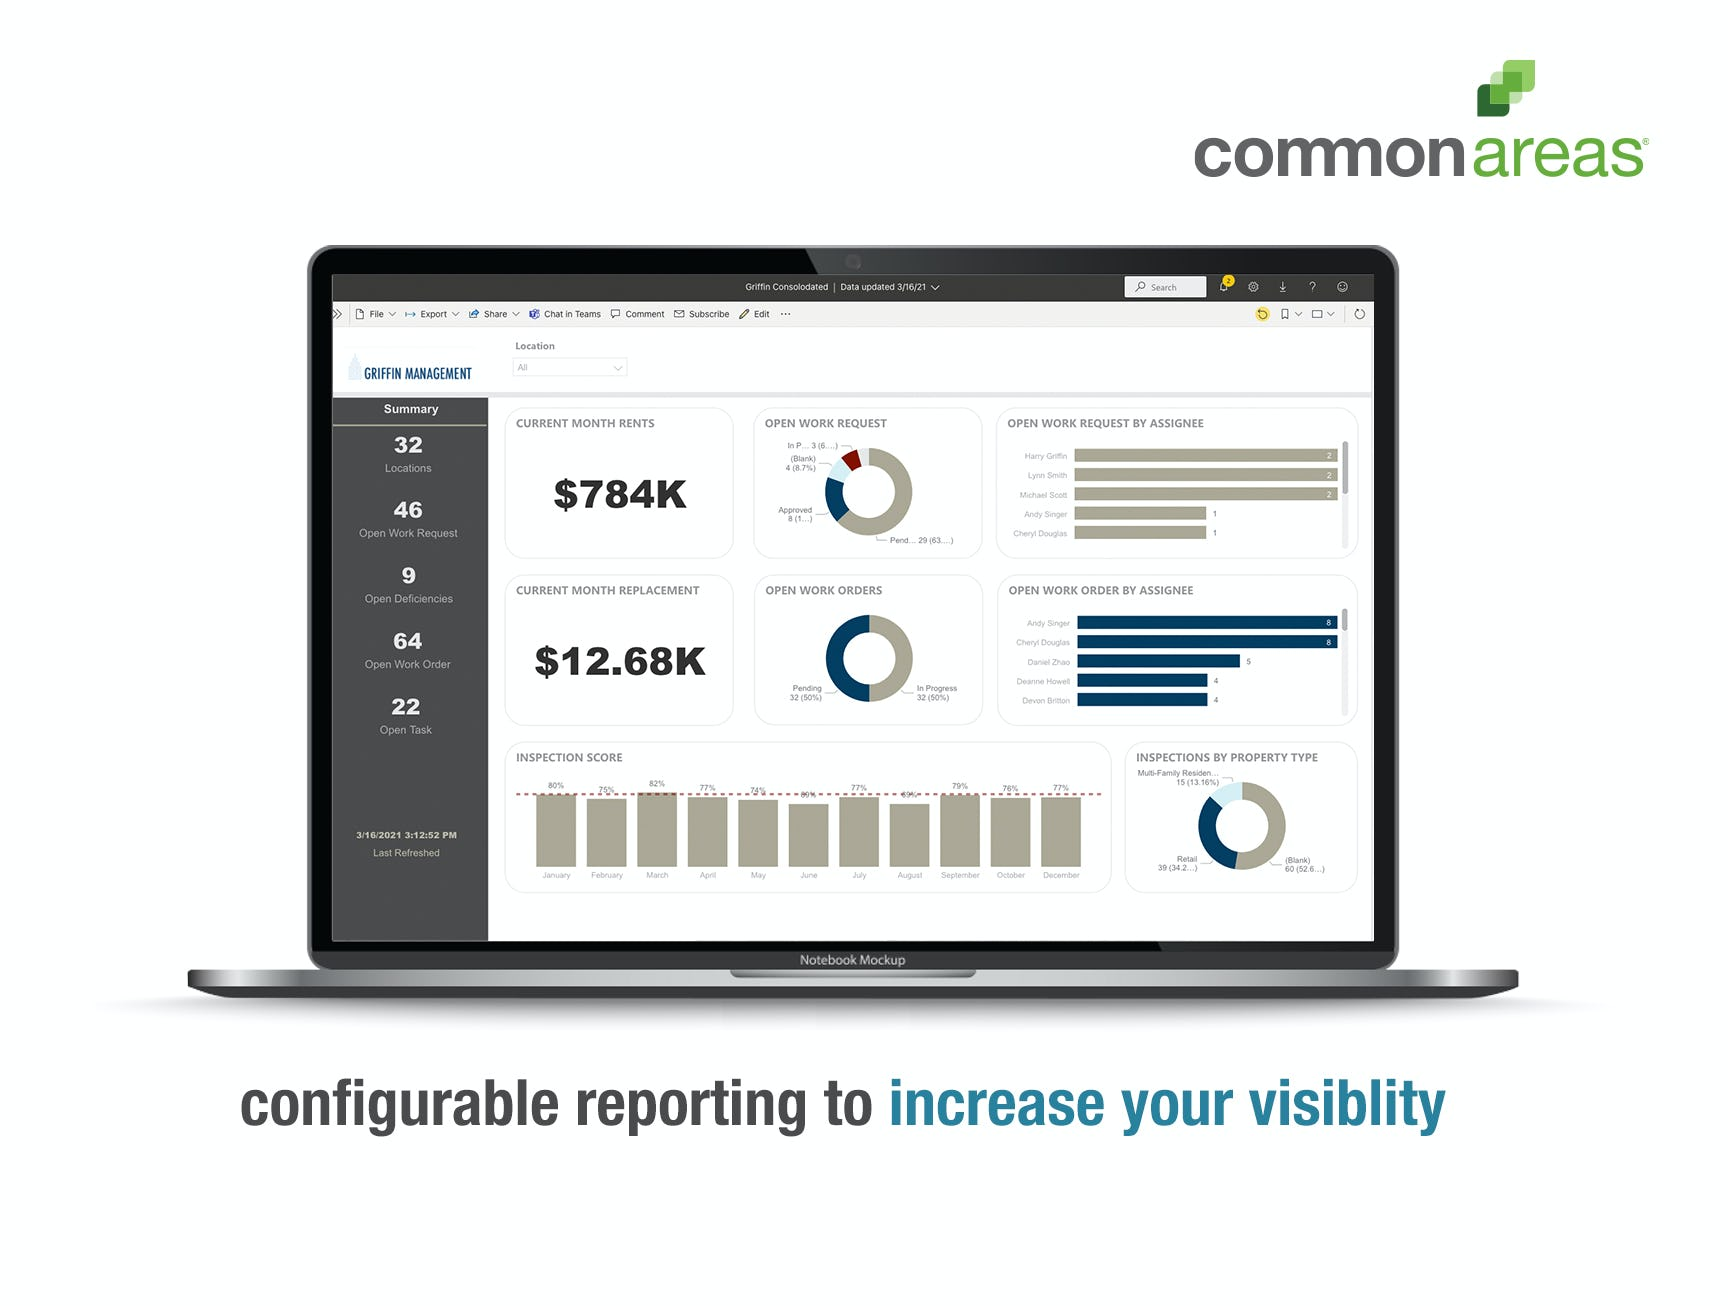 Common Areas Software - Common Areas simplifies and streamlines your property management operations to help you ensure quality standards are achieved, expectations are exceeded, and problems are resolved before they get out of hand.